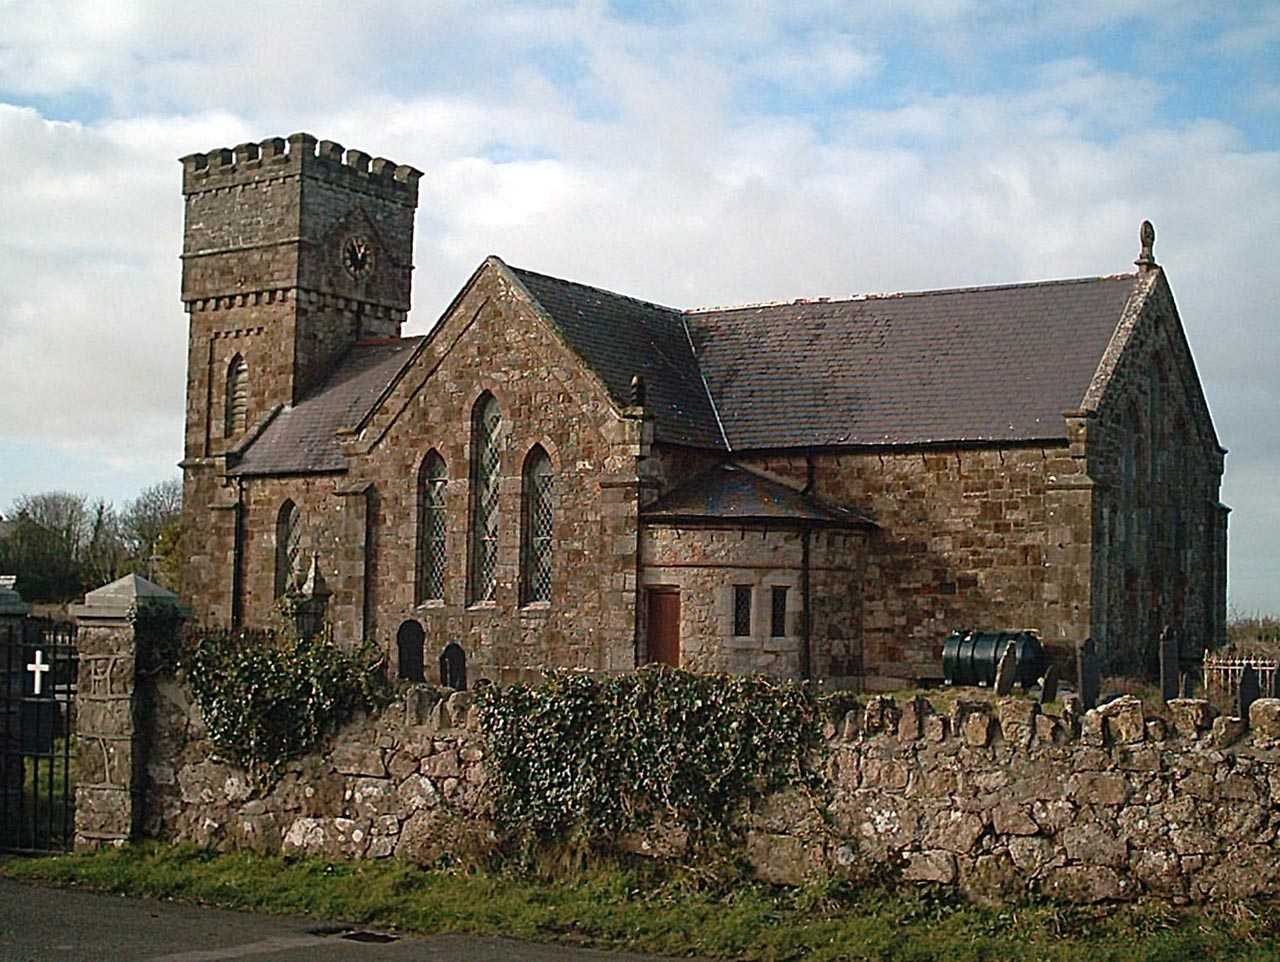 The new Llanidan Church - St Idan / Nidan's